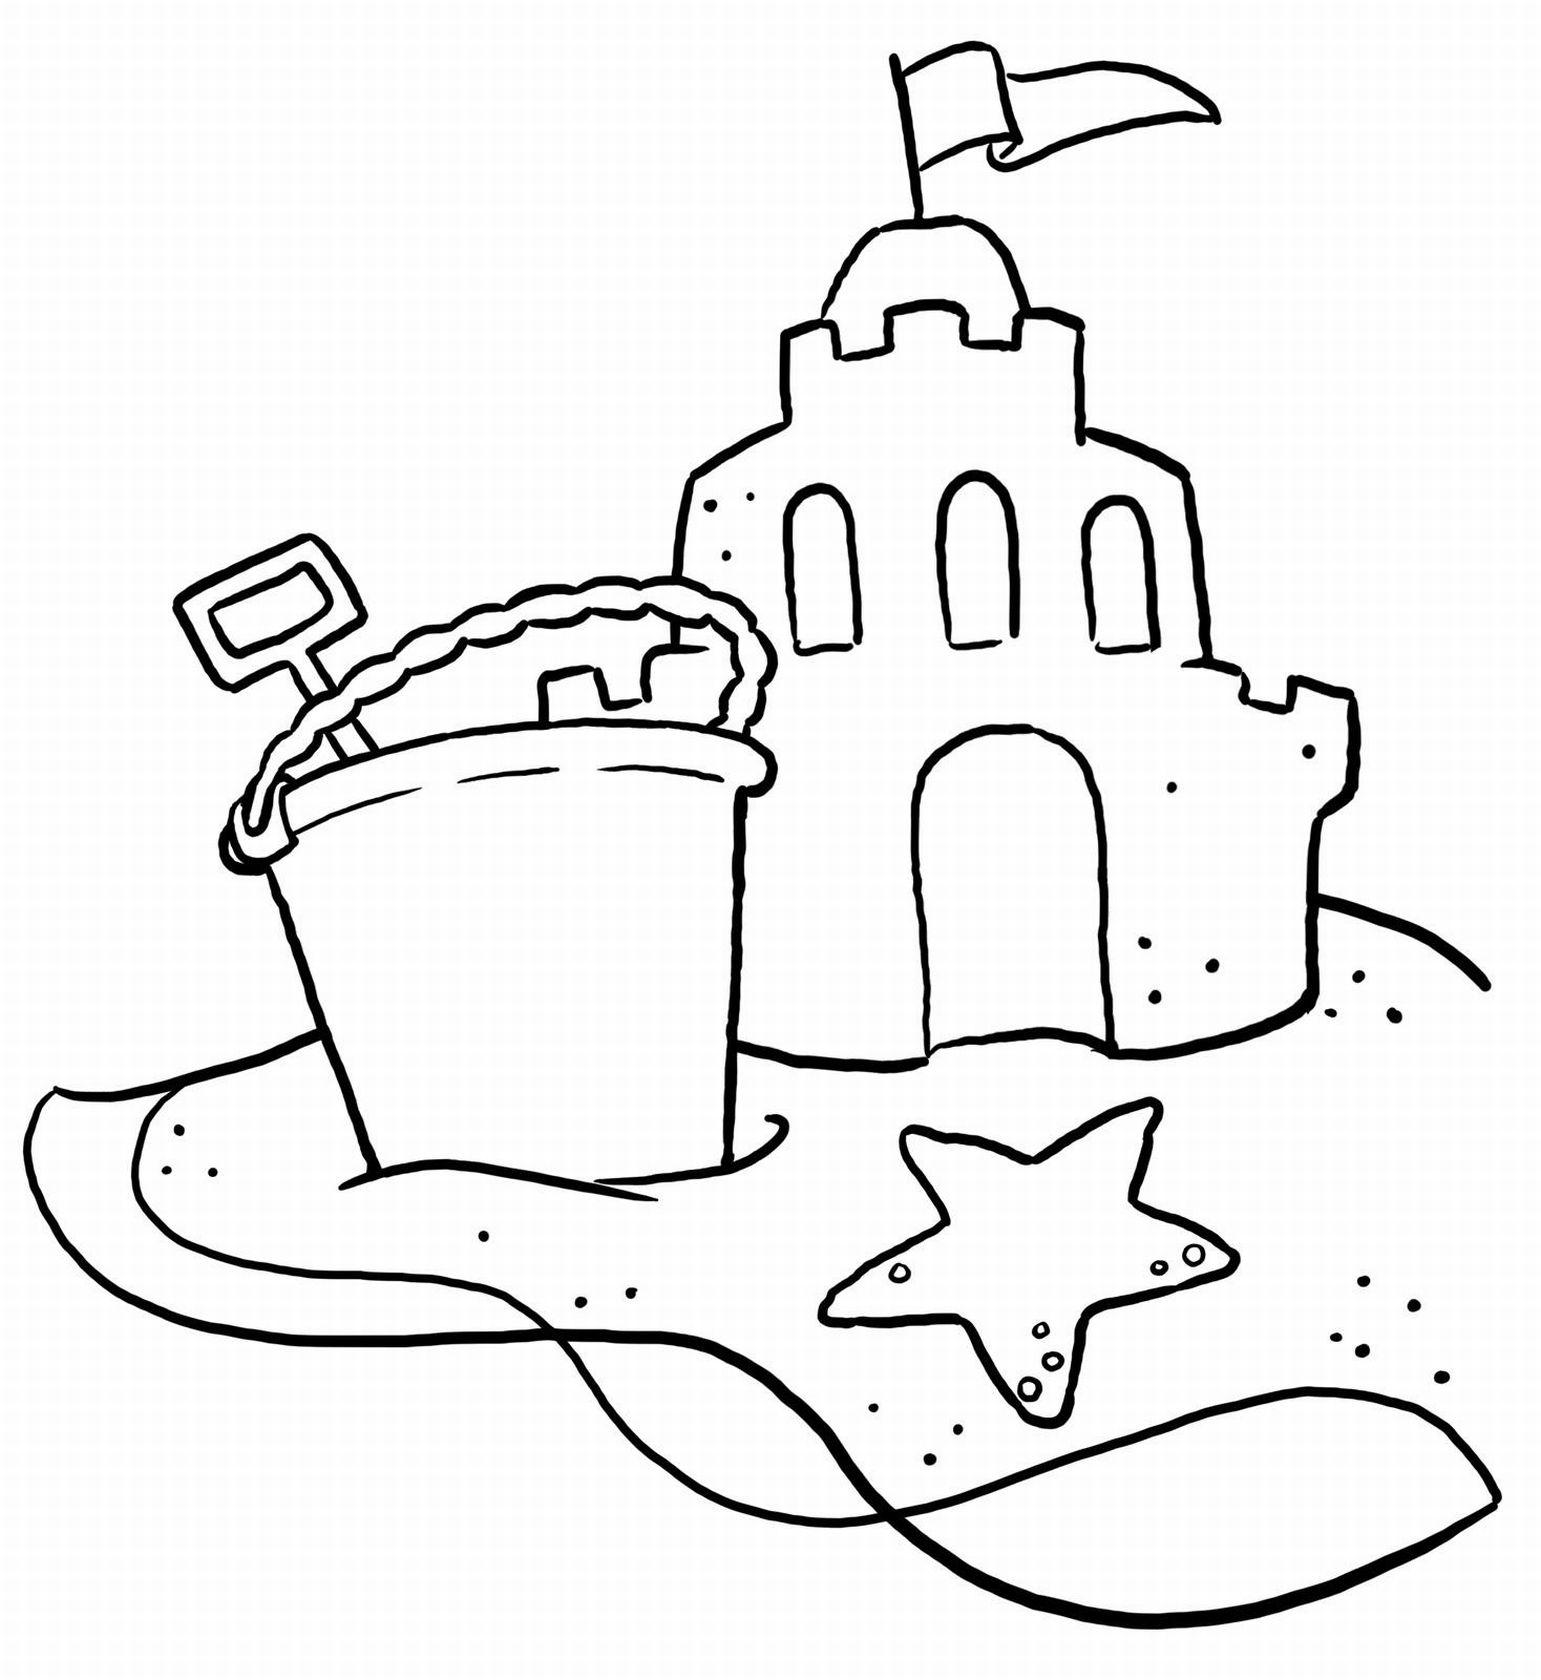 free printable beach coloring pages - photo#12